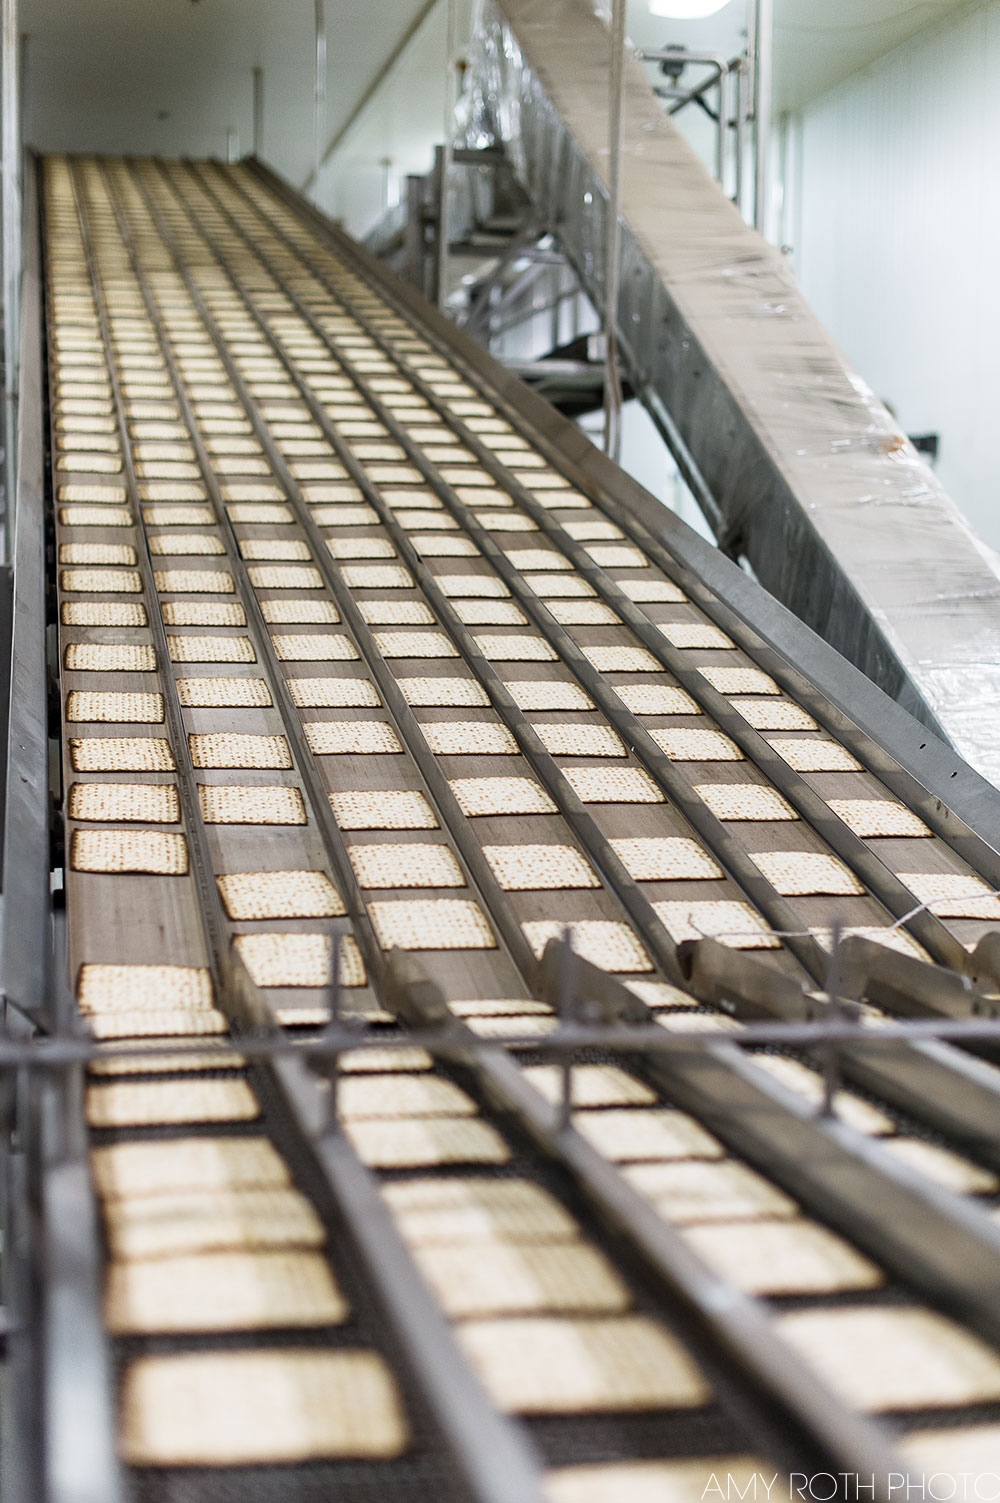 Baked matzoh rides the conveyor belt to the packaging area. Photography by Amy Roth, on assignment for Edible Jersey.